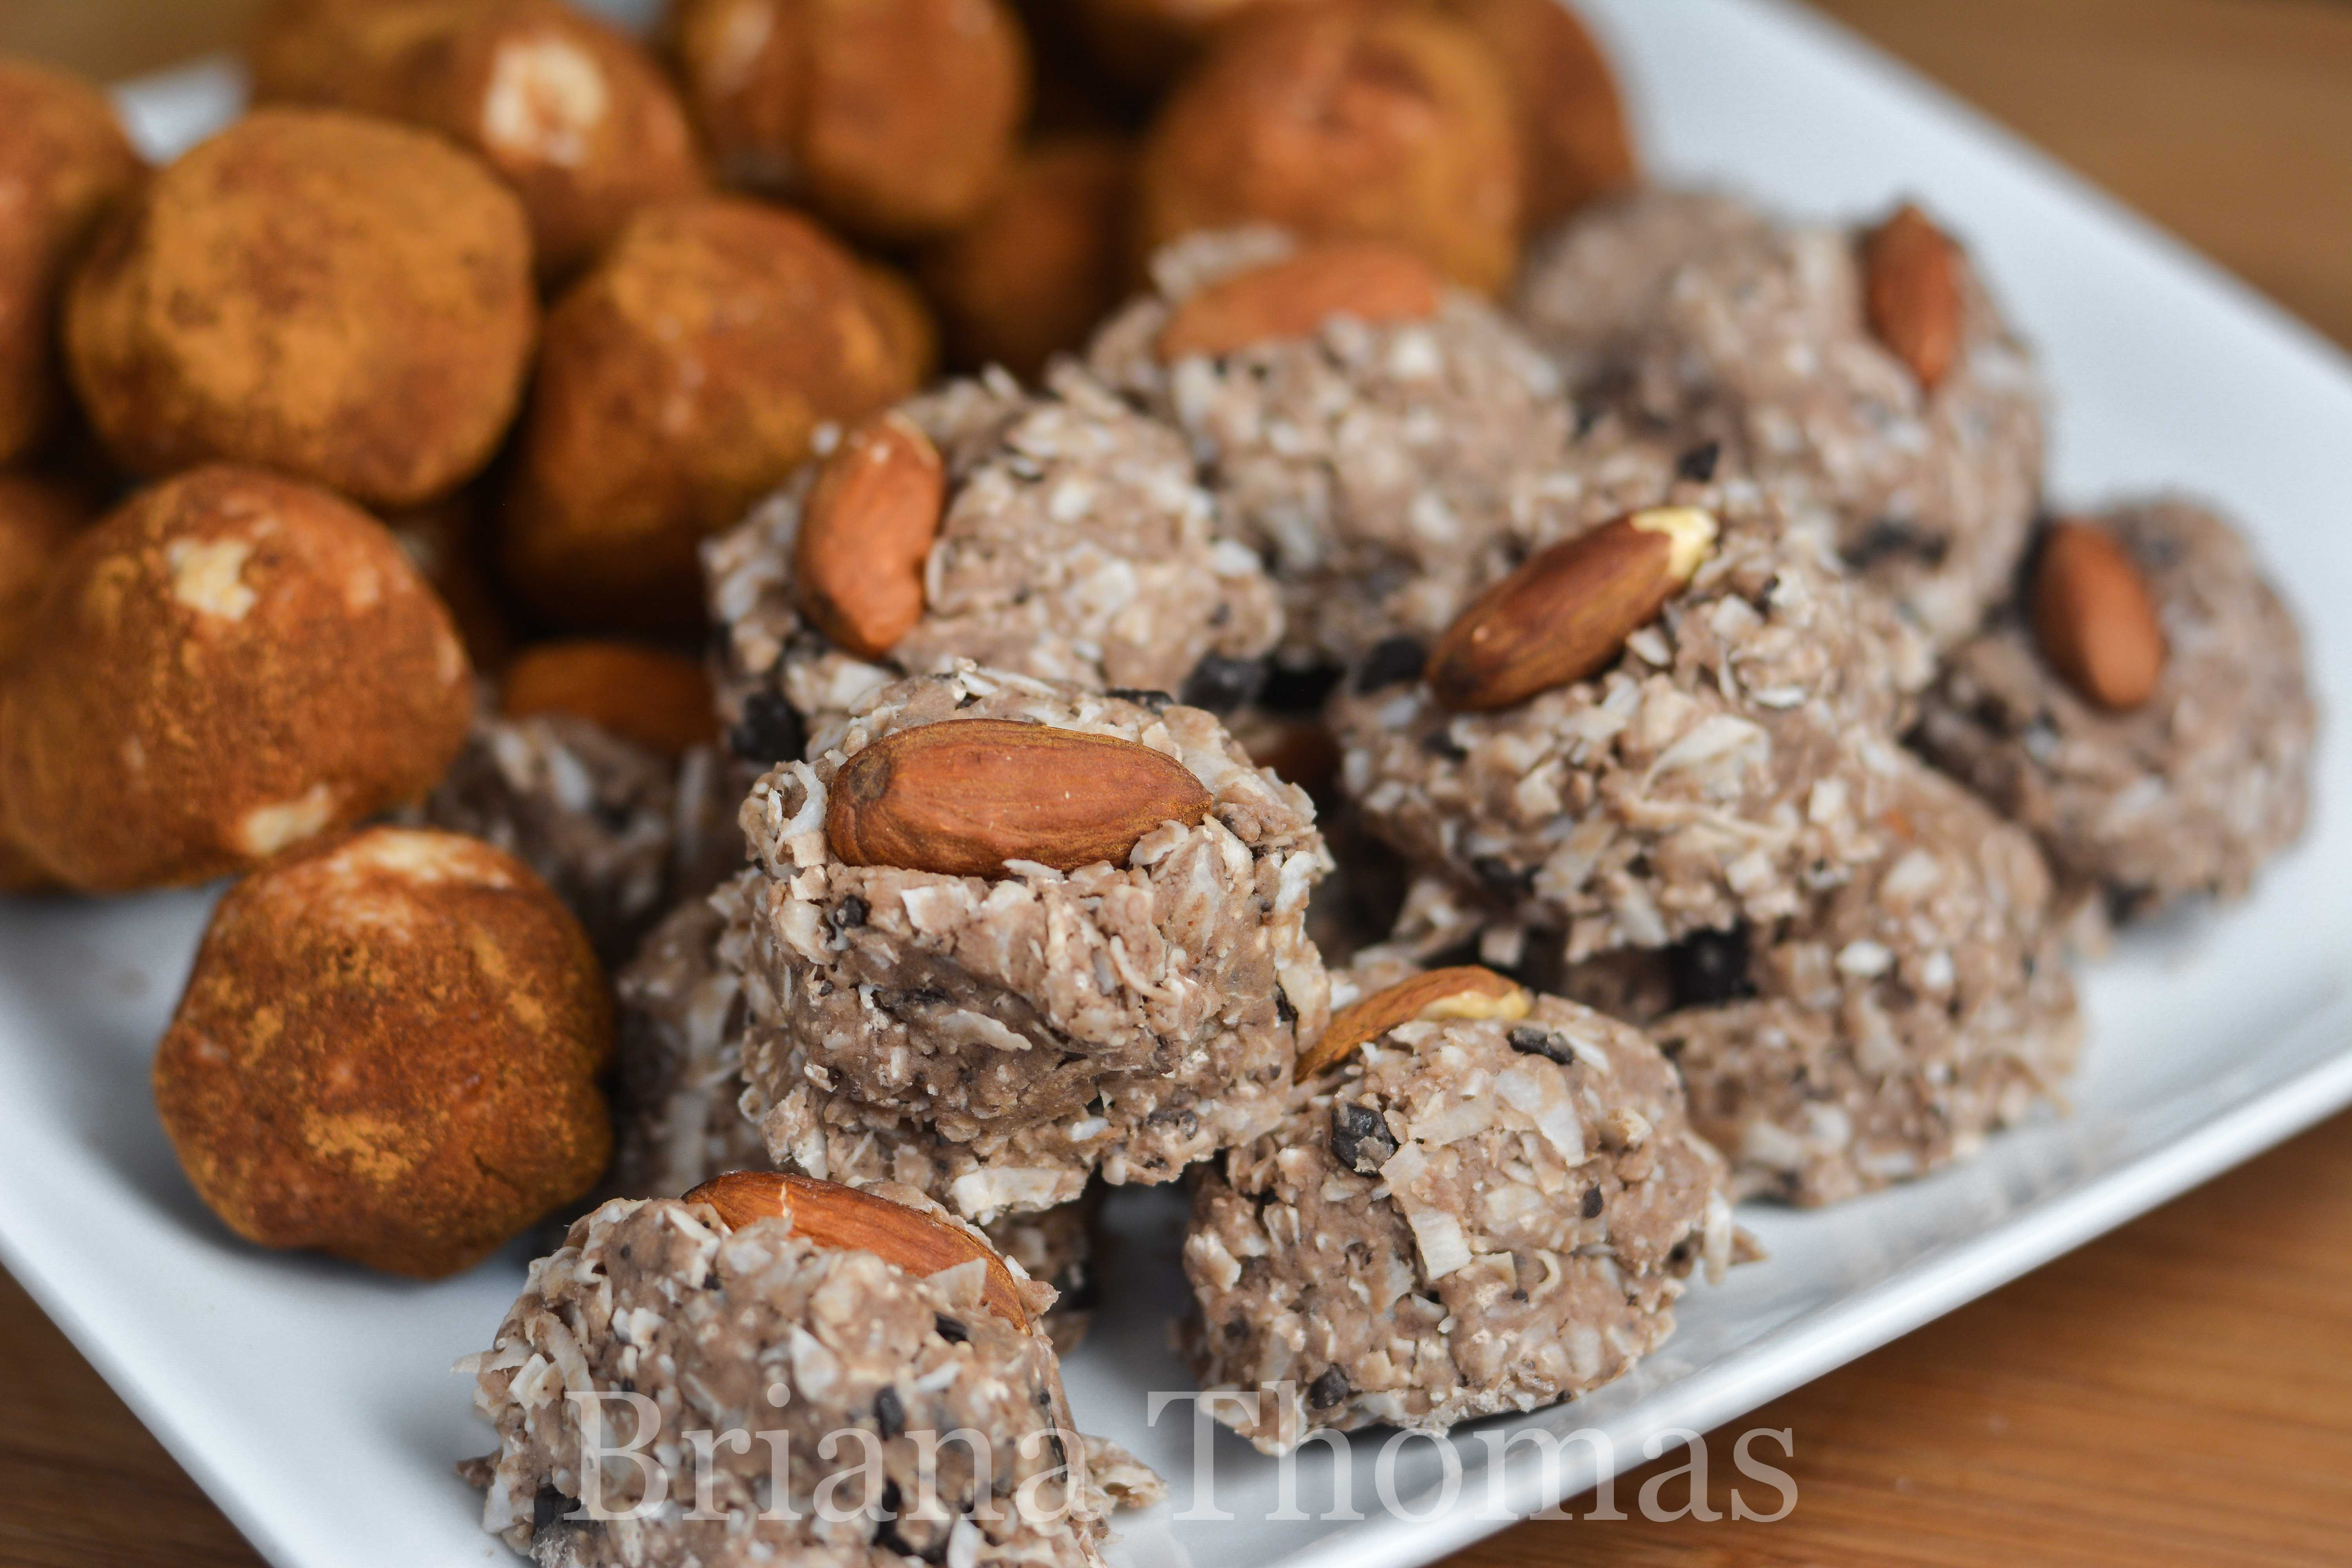 These Joyous Almond Bites are a low-carb, sugar-free tweak off of the popular Almond Joy candy bar! THM:S, gluten/egg/dairy free with nut free option